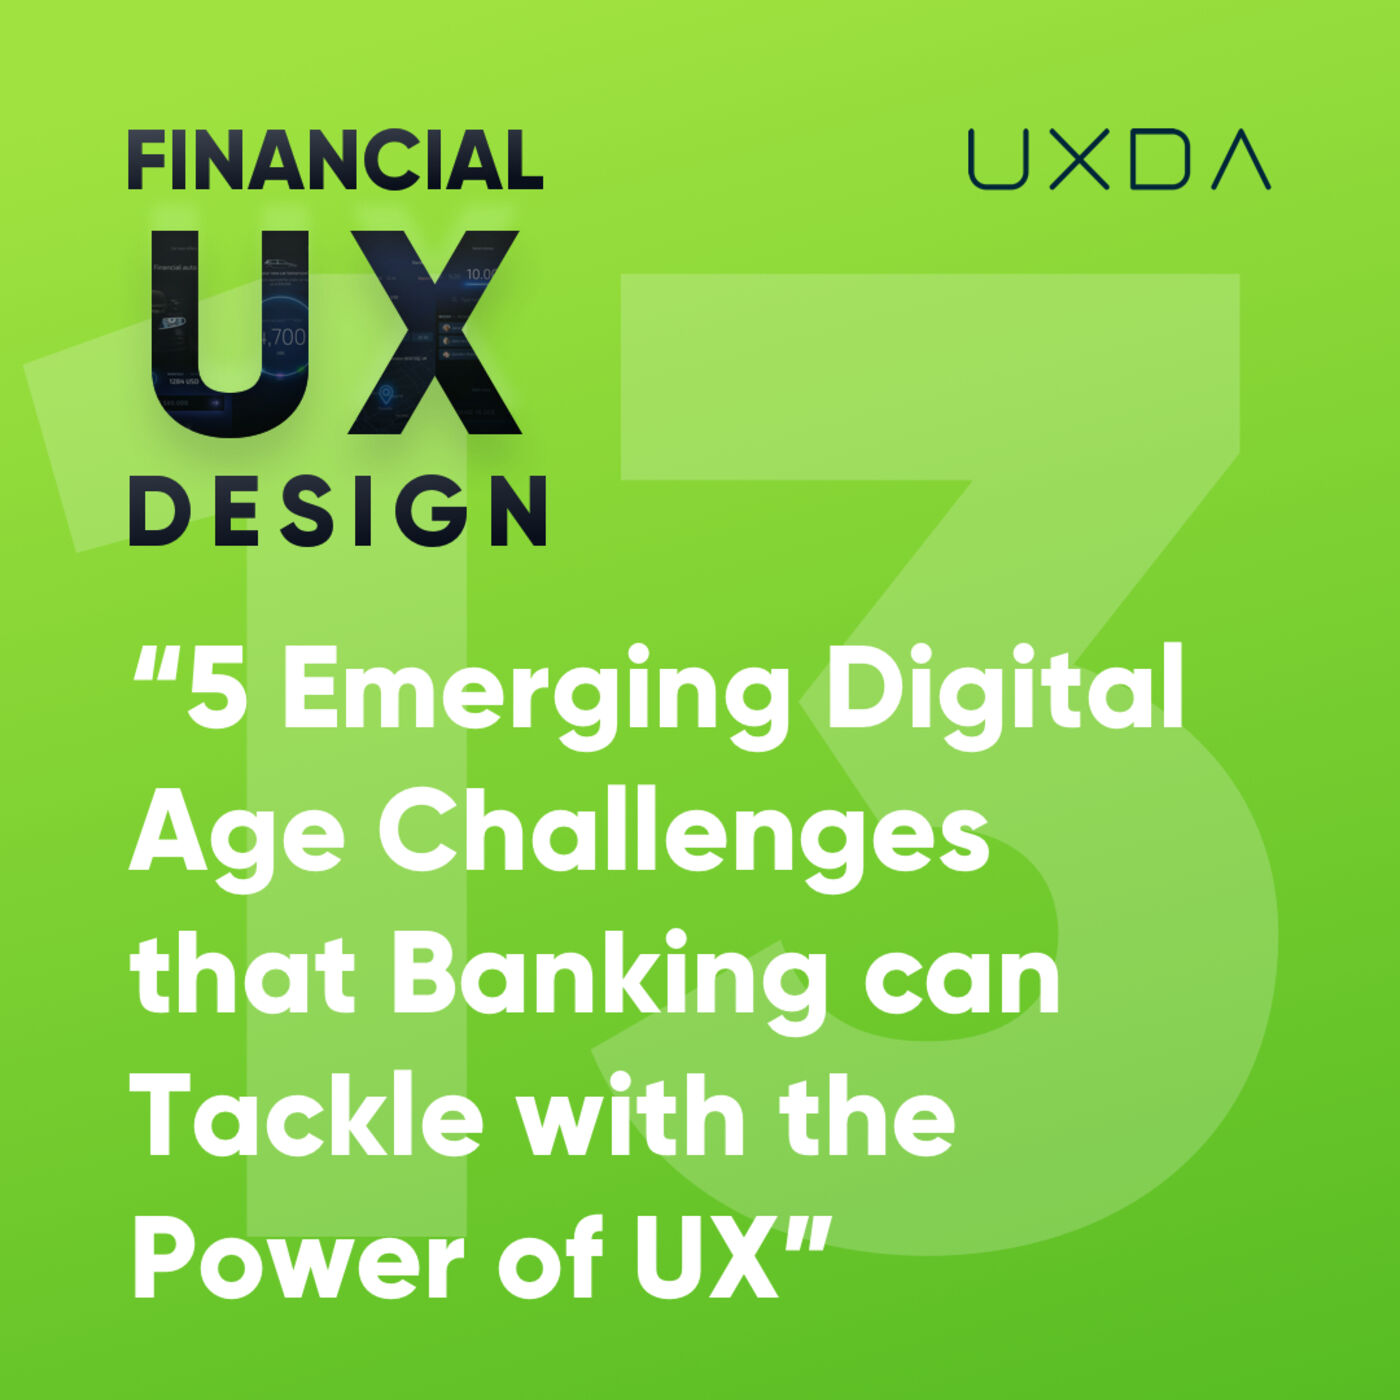 #13 Five Digital Age Challenges that Digital Banking can Tackle with the Power of Financial UX